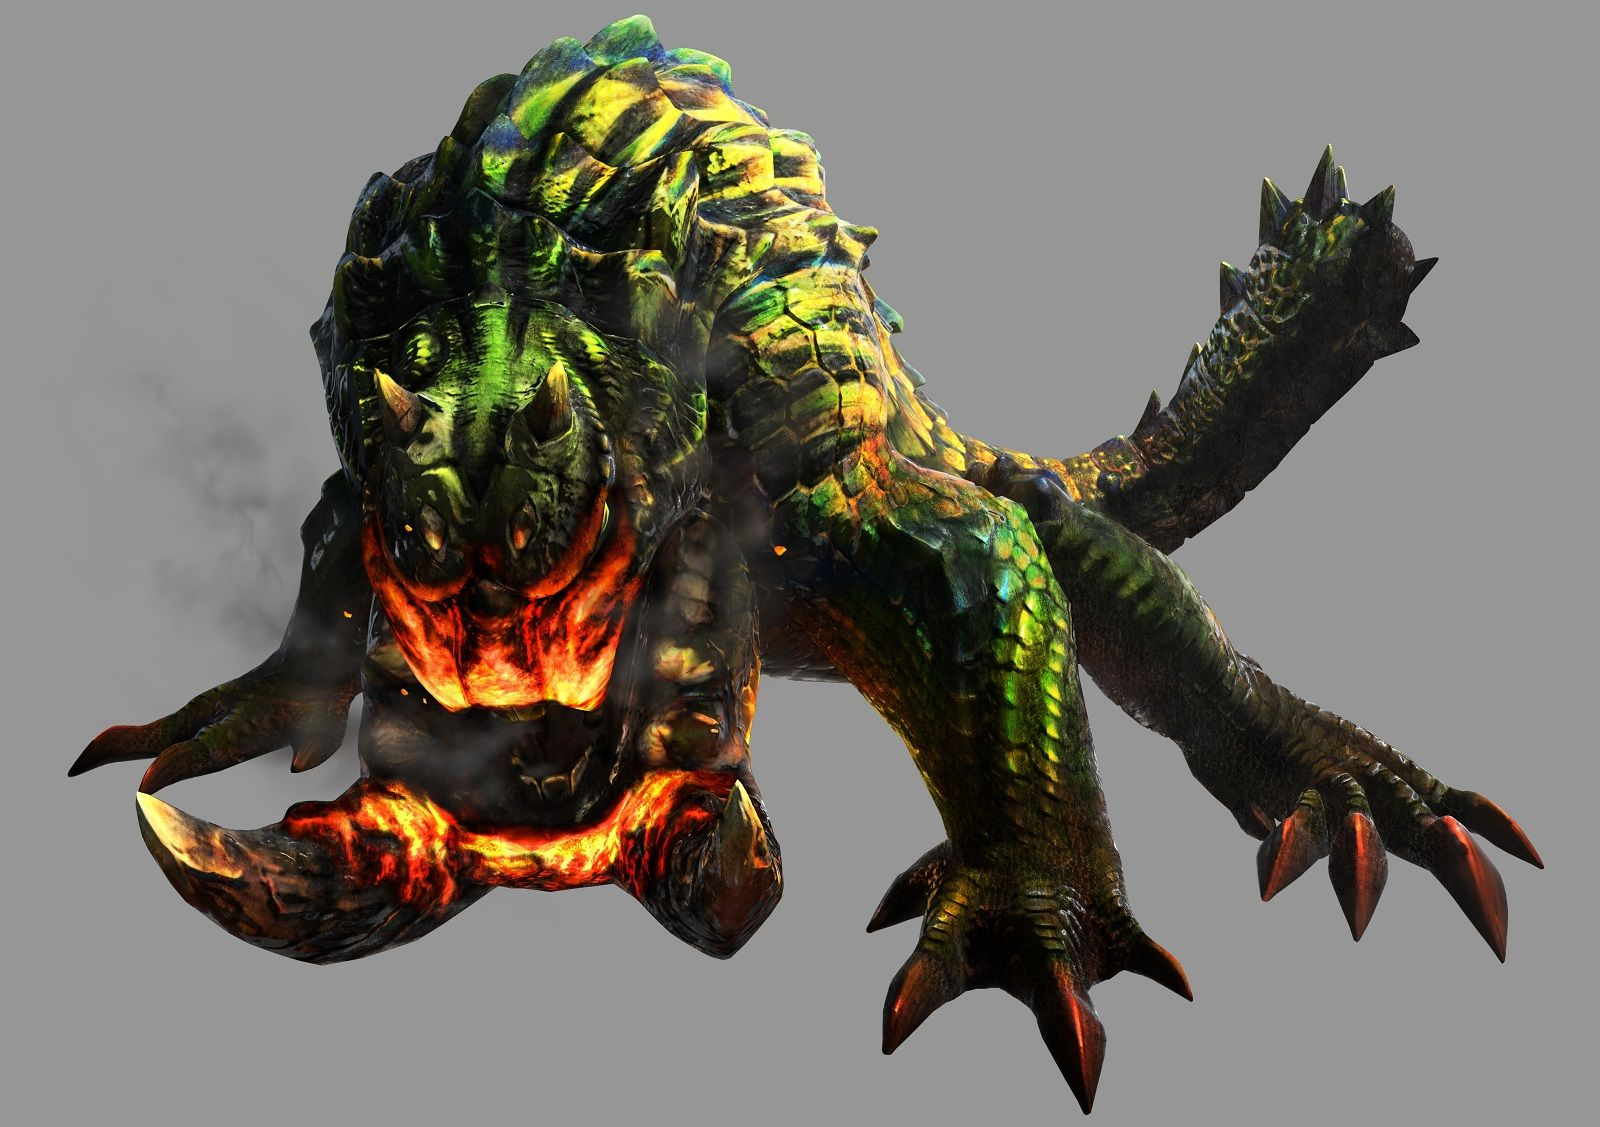 Monster hunter 4 ultimate monsters google search monster hunter 4 ultimate monsters google search voltagebd Choice Image